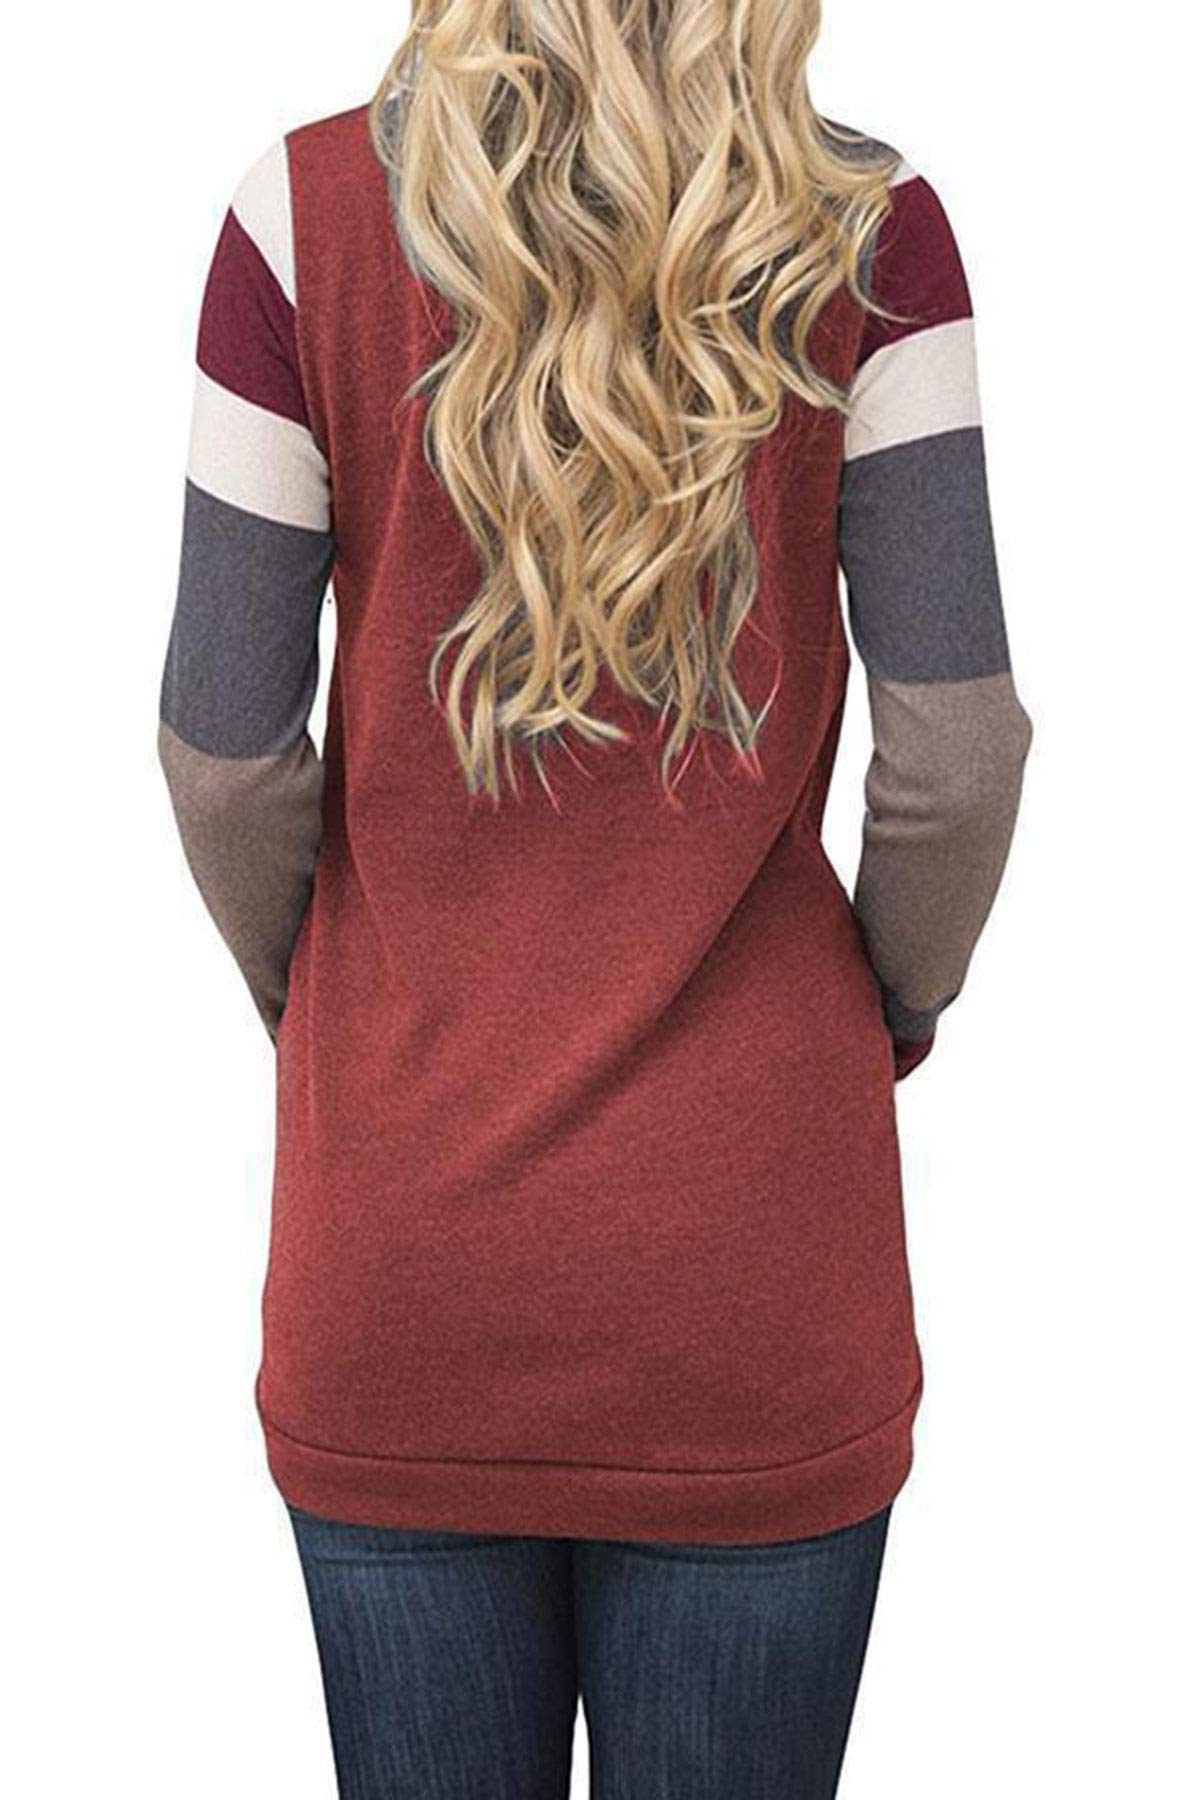 IMIDO Womens U Neck Tops Striped Color Block T-Shirts Casual Pullover Lightweight Long Sleeve Tunic Blouses (M, B-Wine Red)